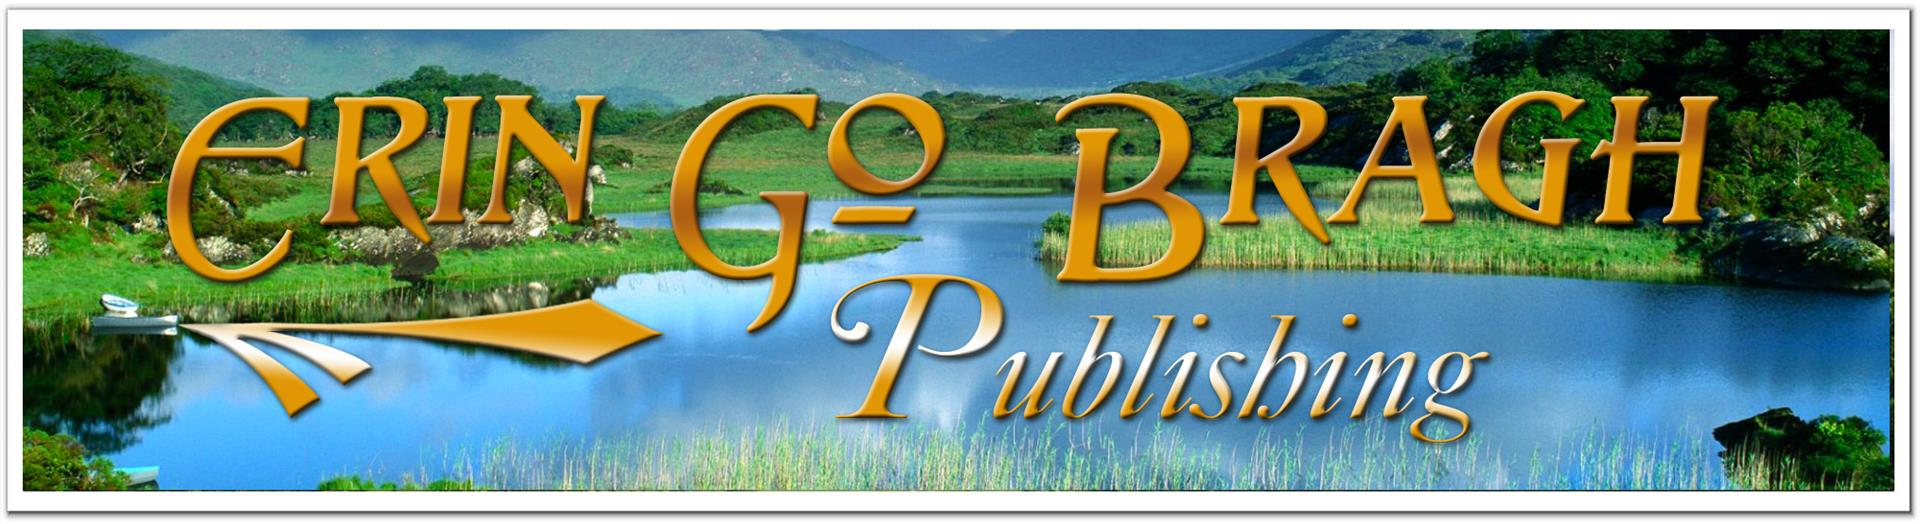 erin-go-braugh-publishing2